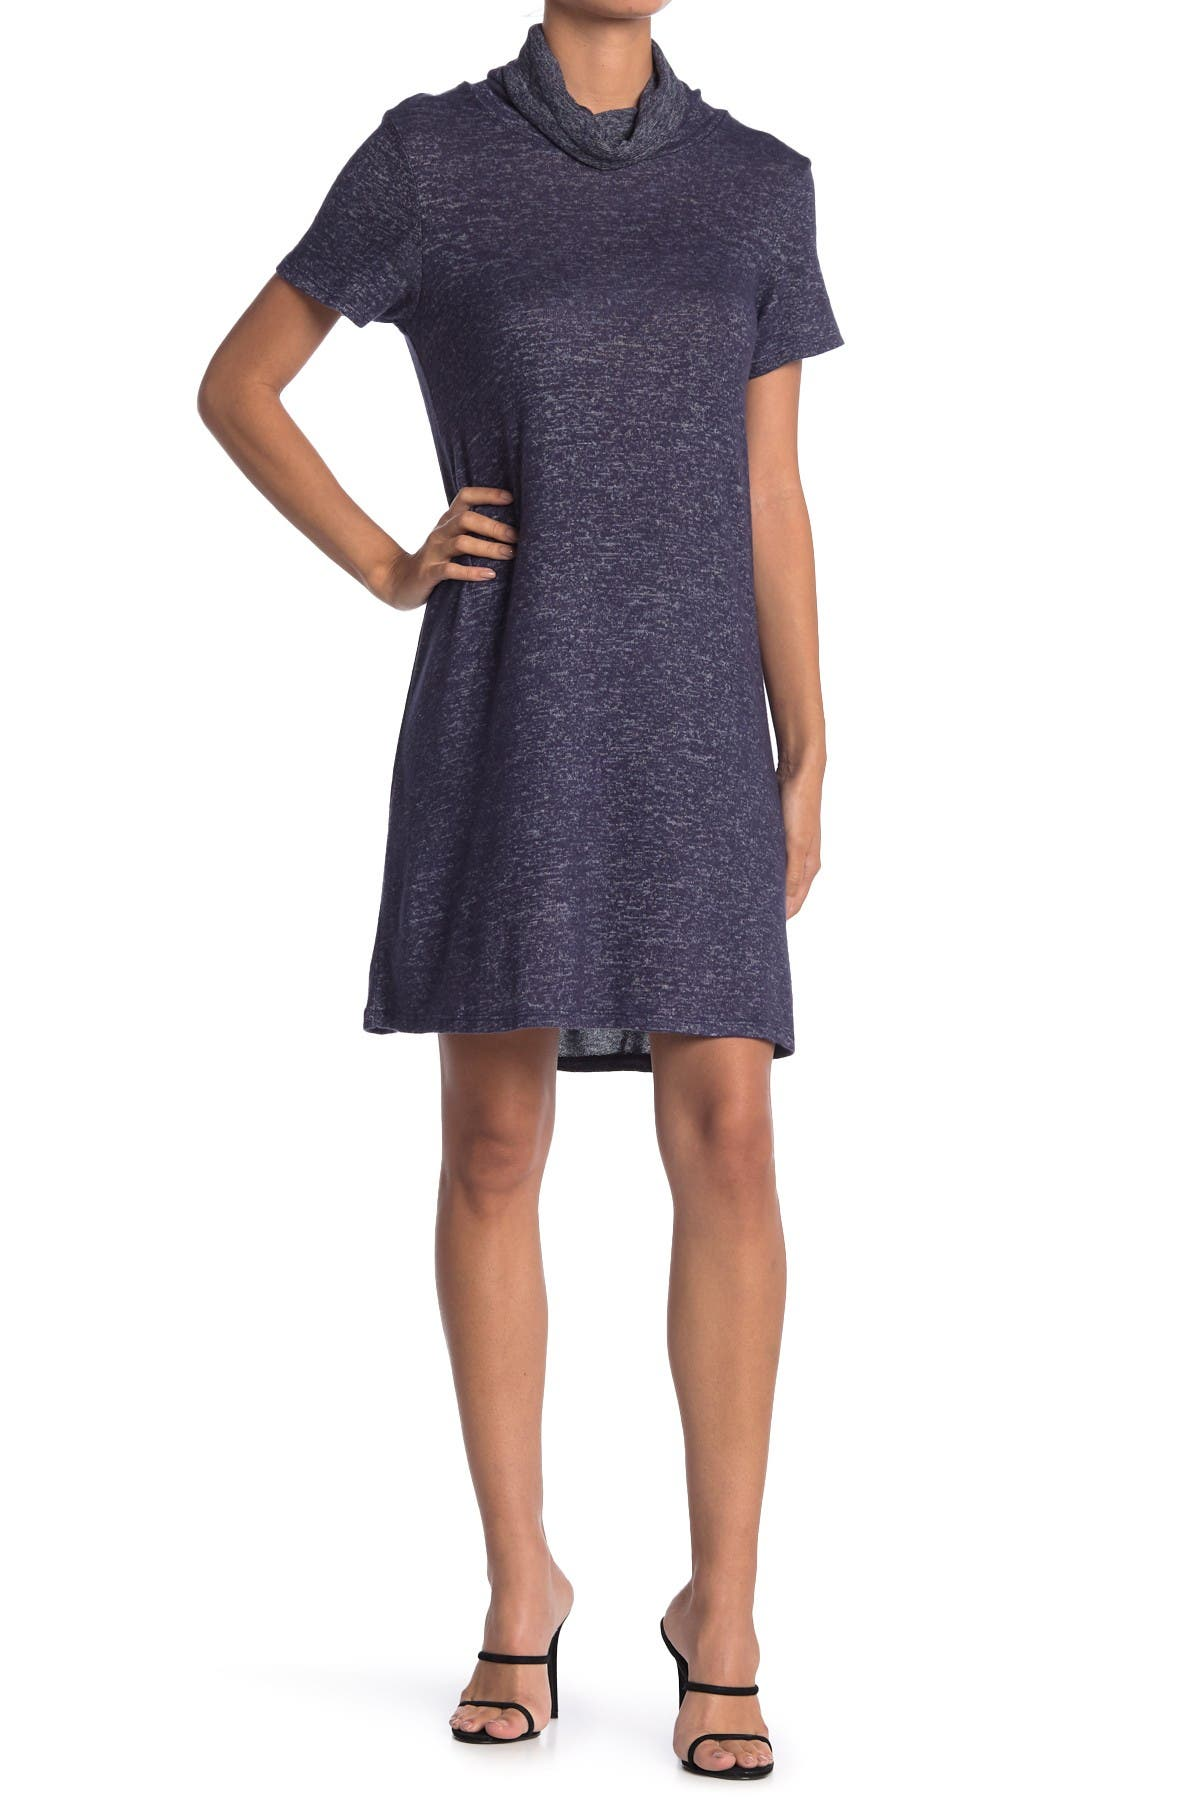 Image of Bobeau Cowl Neck Built-In Face Mask Space Dye Print Sweater Dress